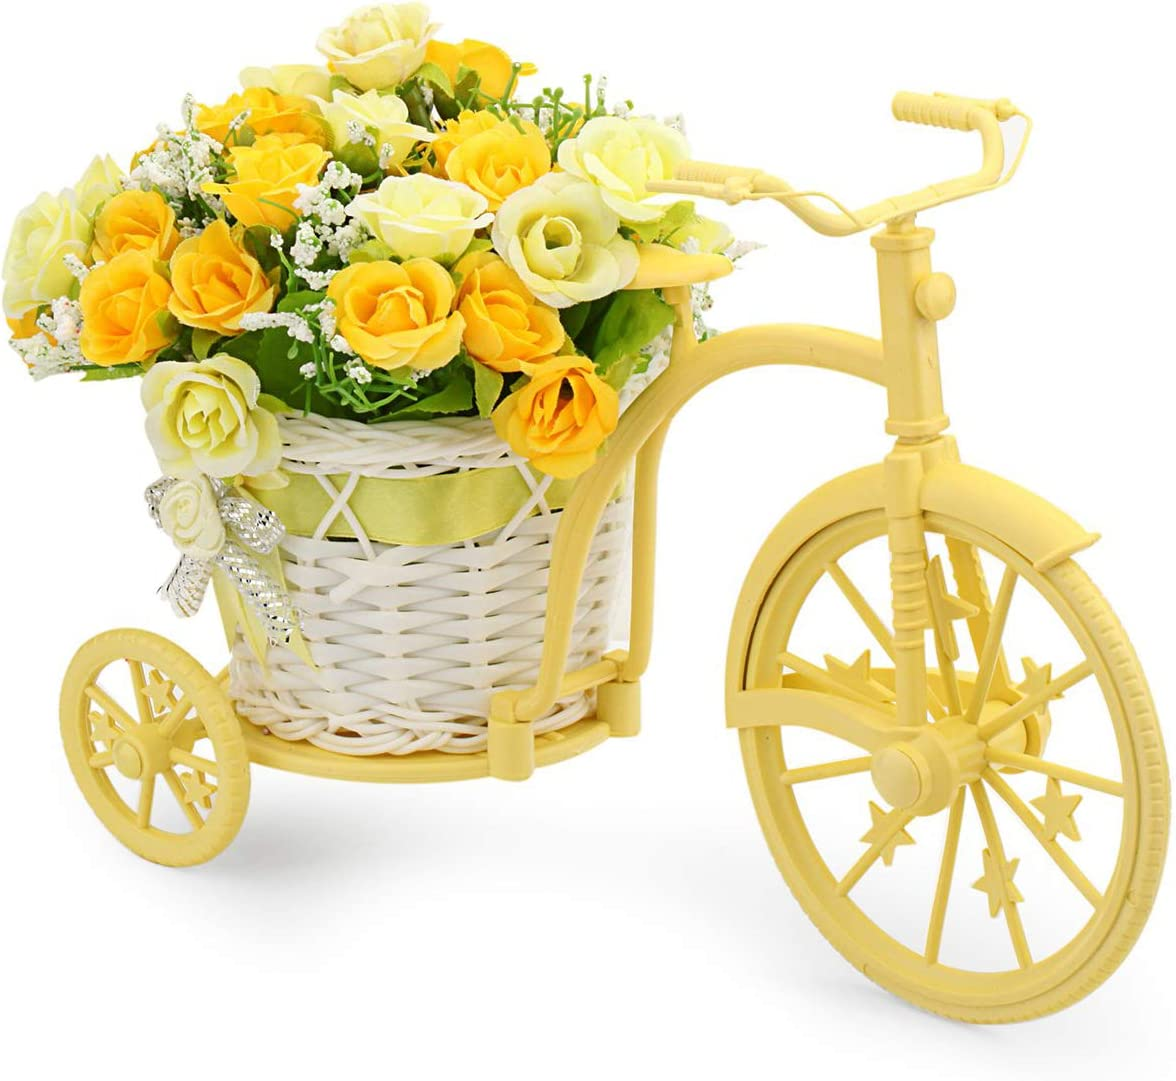 Xelparuc Nostalgic Bicycle Artificial Flower Decor Plant Stand (Yellow)